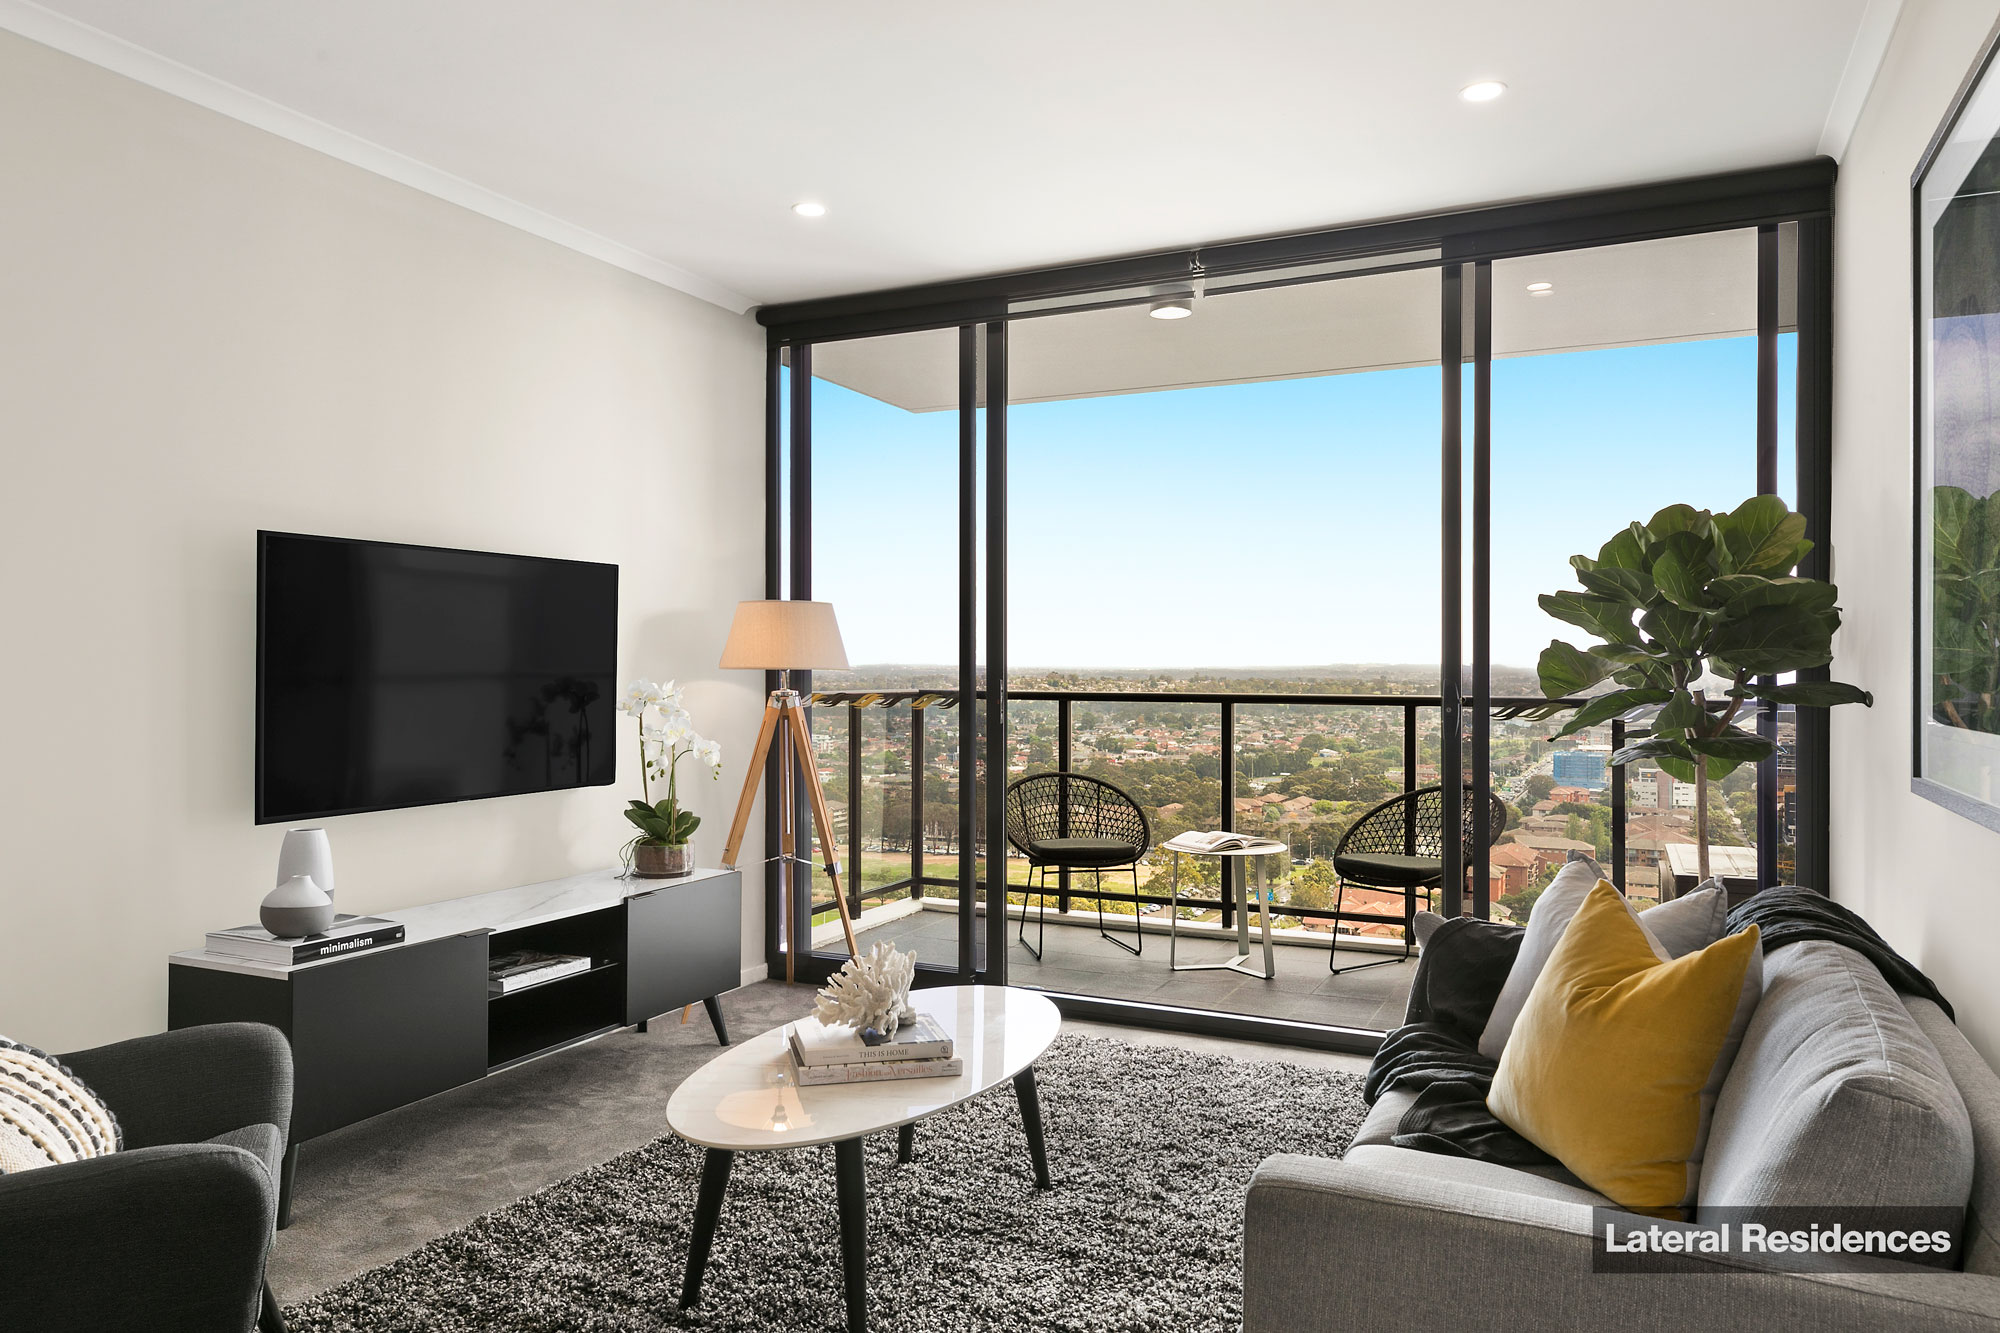 438 Macquarie St, Liverpool NSW 2170 - Apartment For Rent ...